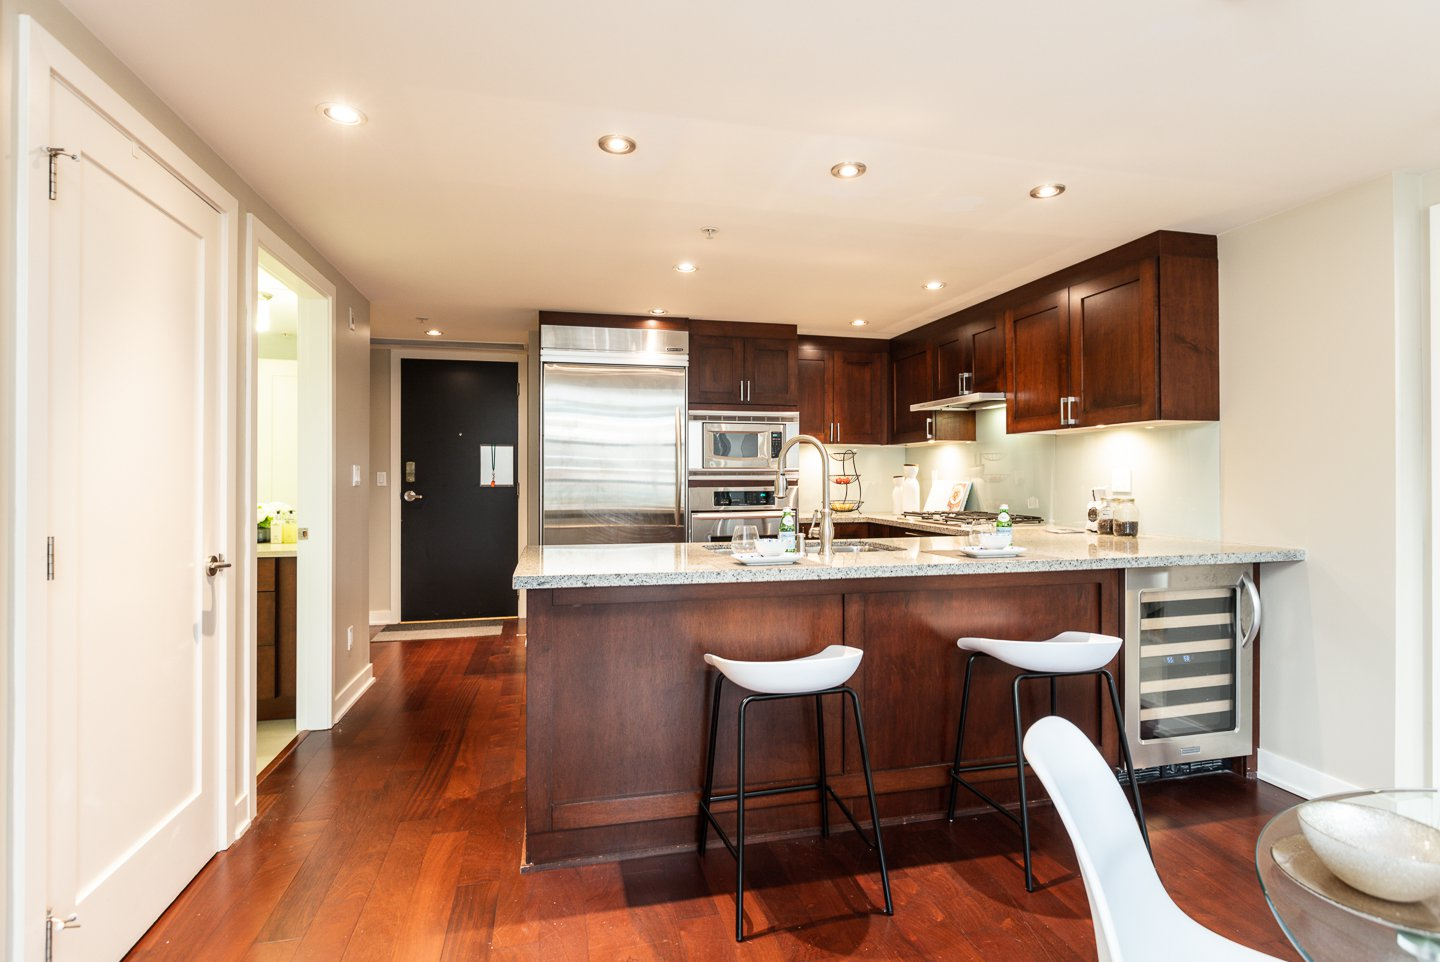 Main Photo: 302-3595 W 18TH AV in VANCOUVER: Dunbar Condo for sale (Vancouver West)  : MLS®# R2519070